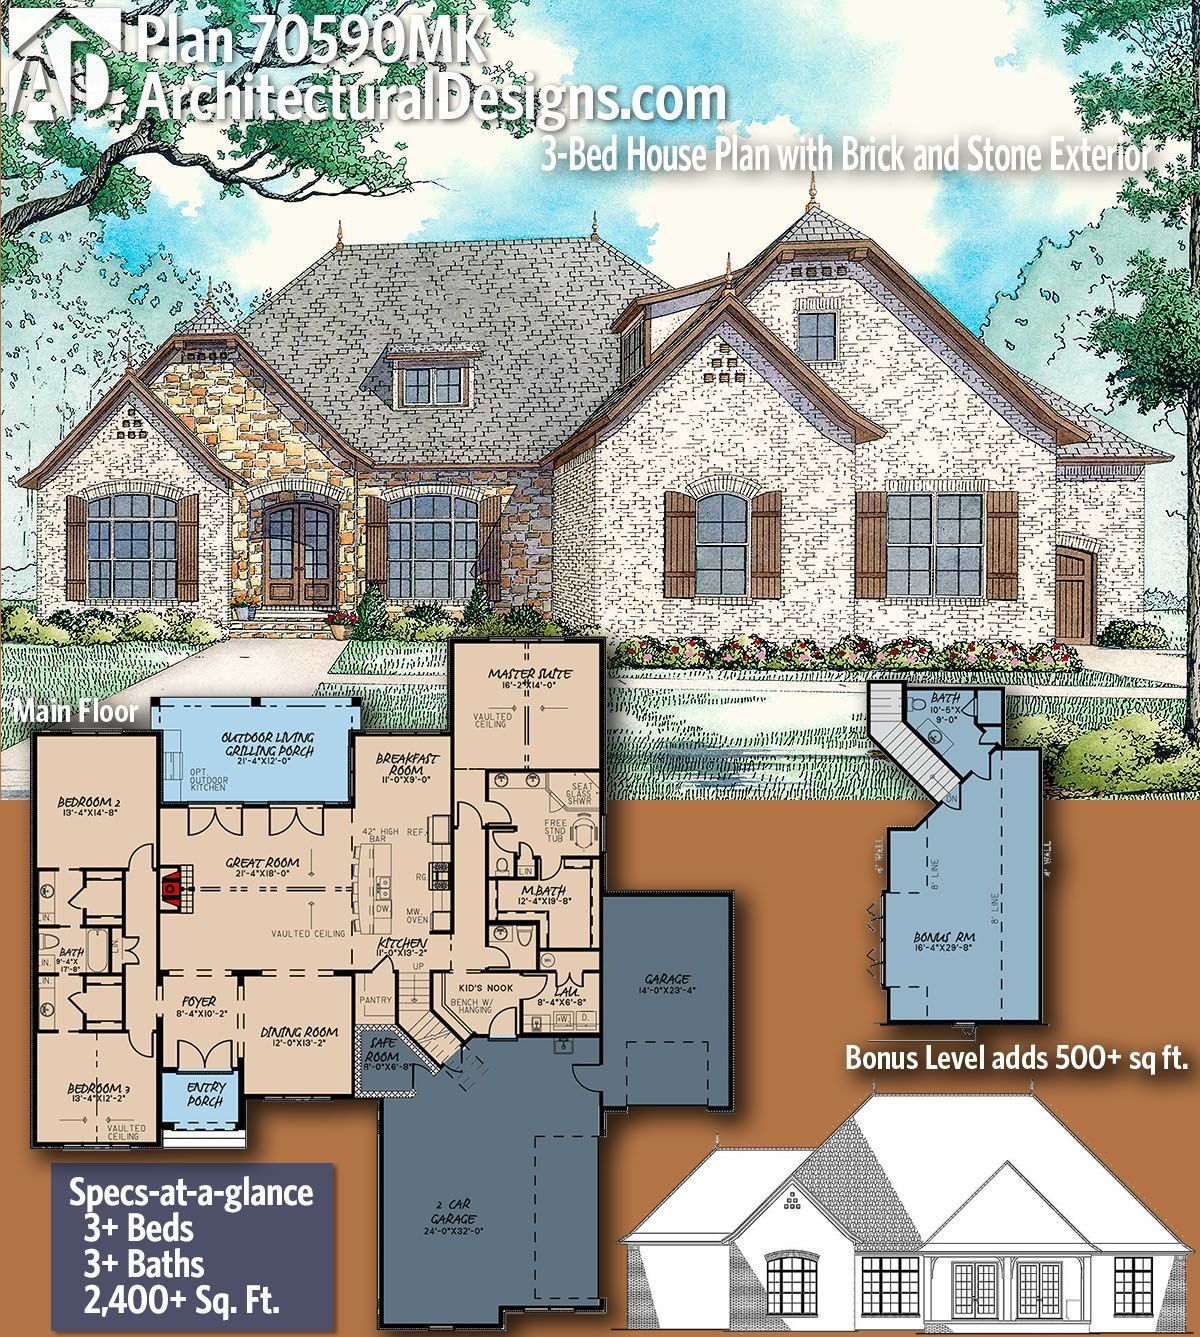 Plan 70590mk 3 Bed House Plan With Brick And Stone Exterior Craftsman House Plans House Plans Country Style House Plans